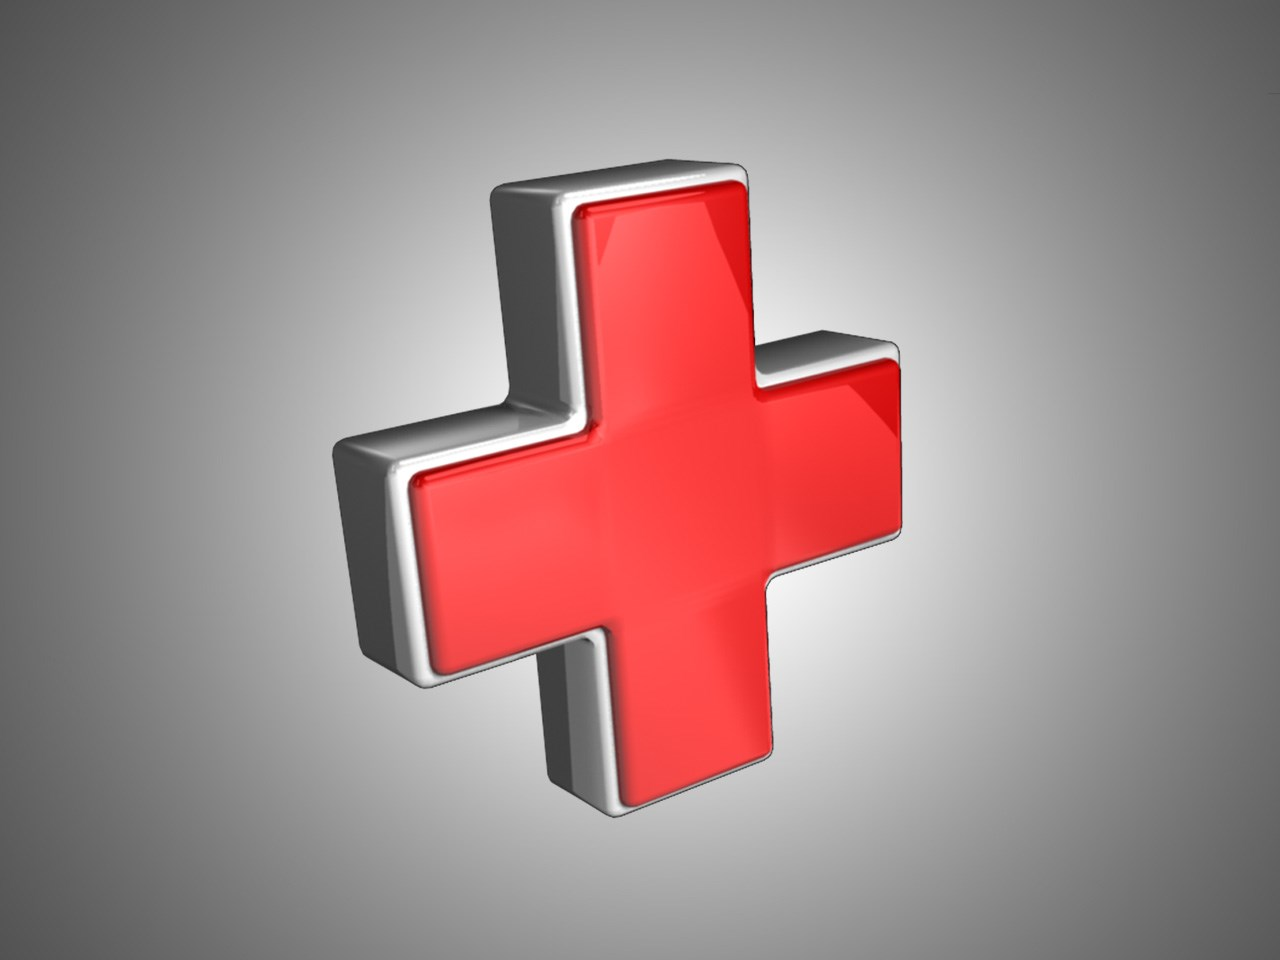 Arkansas Red Cross Deployed to Help Rogers Family